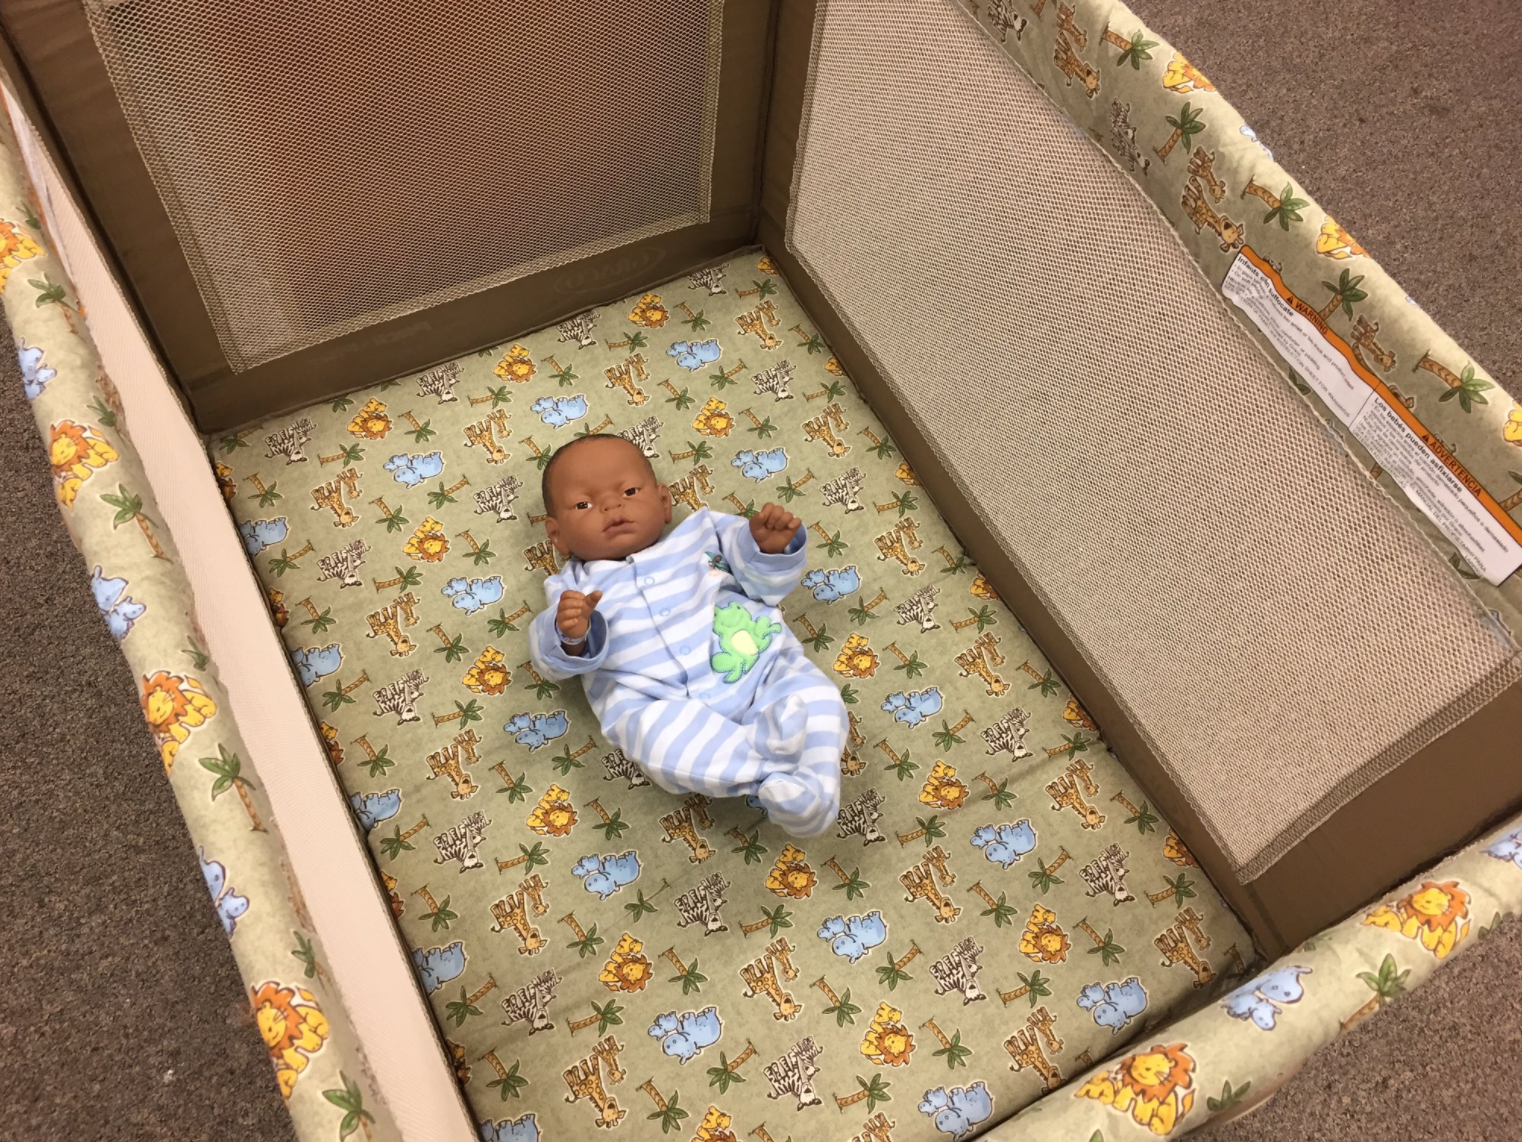 Baltimore City Health Department Example of ABCs Safe Sleep Crib